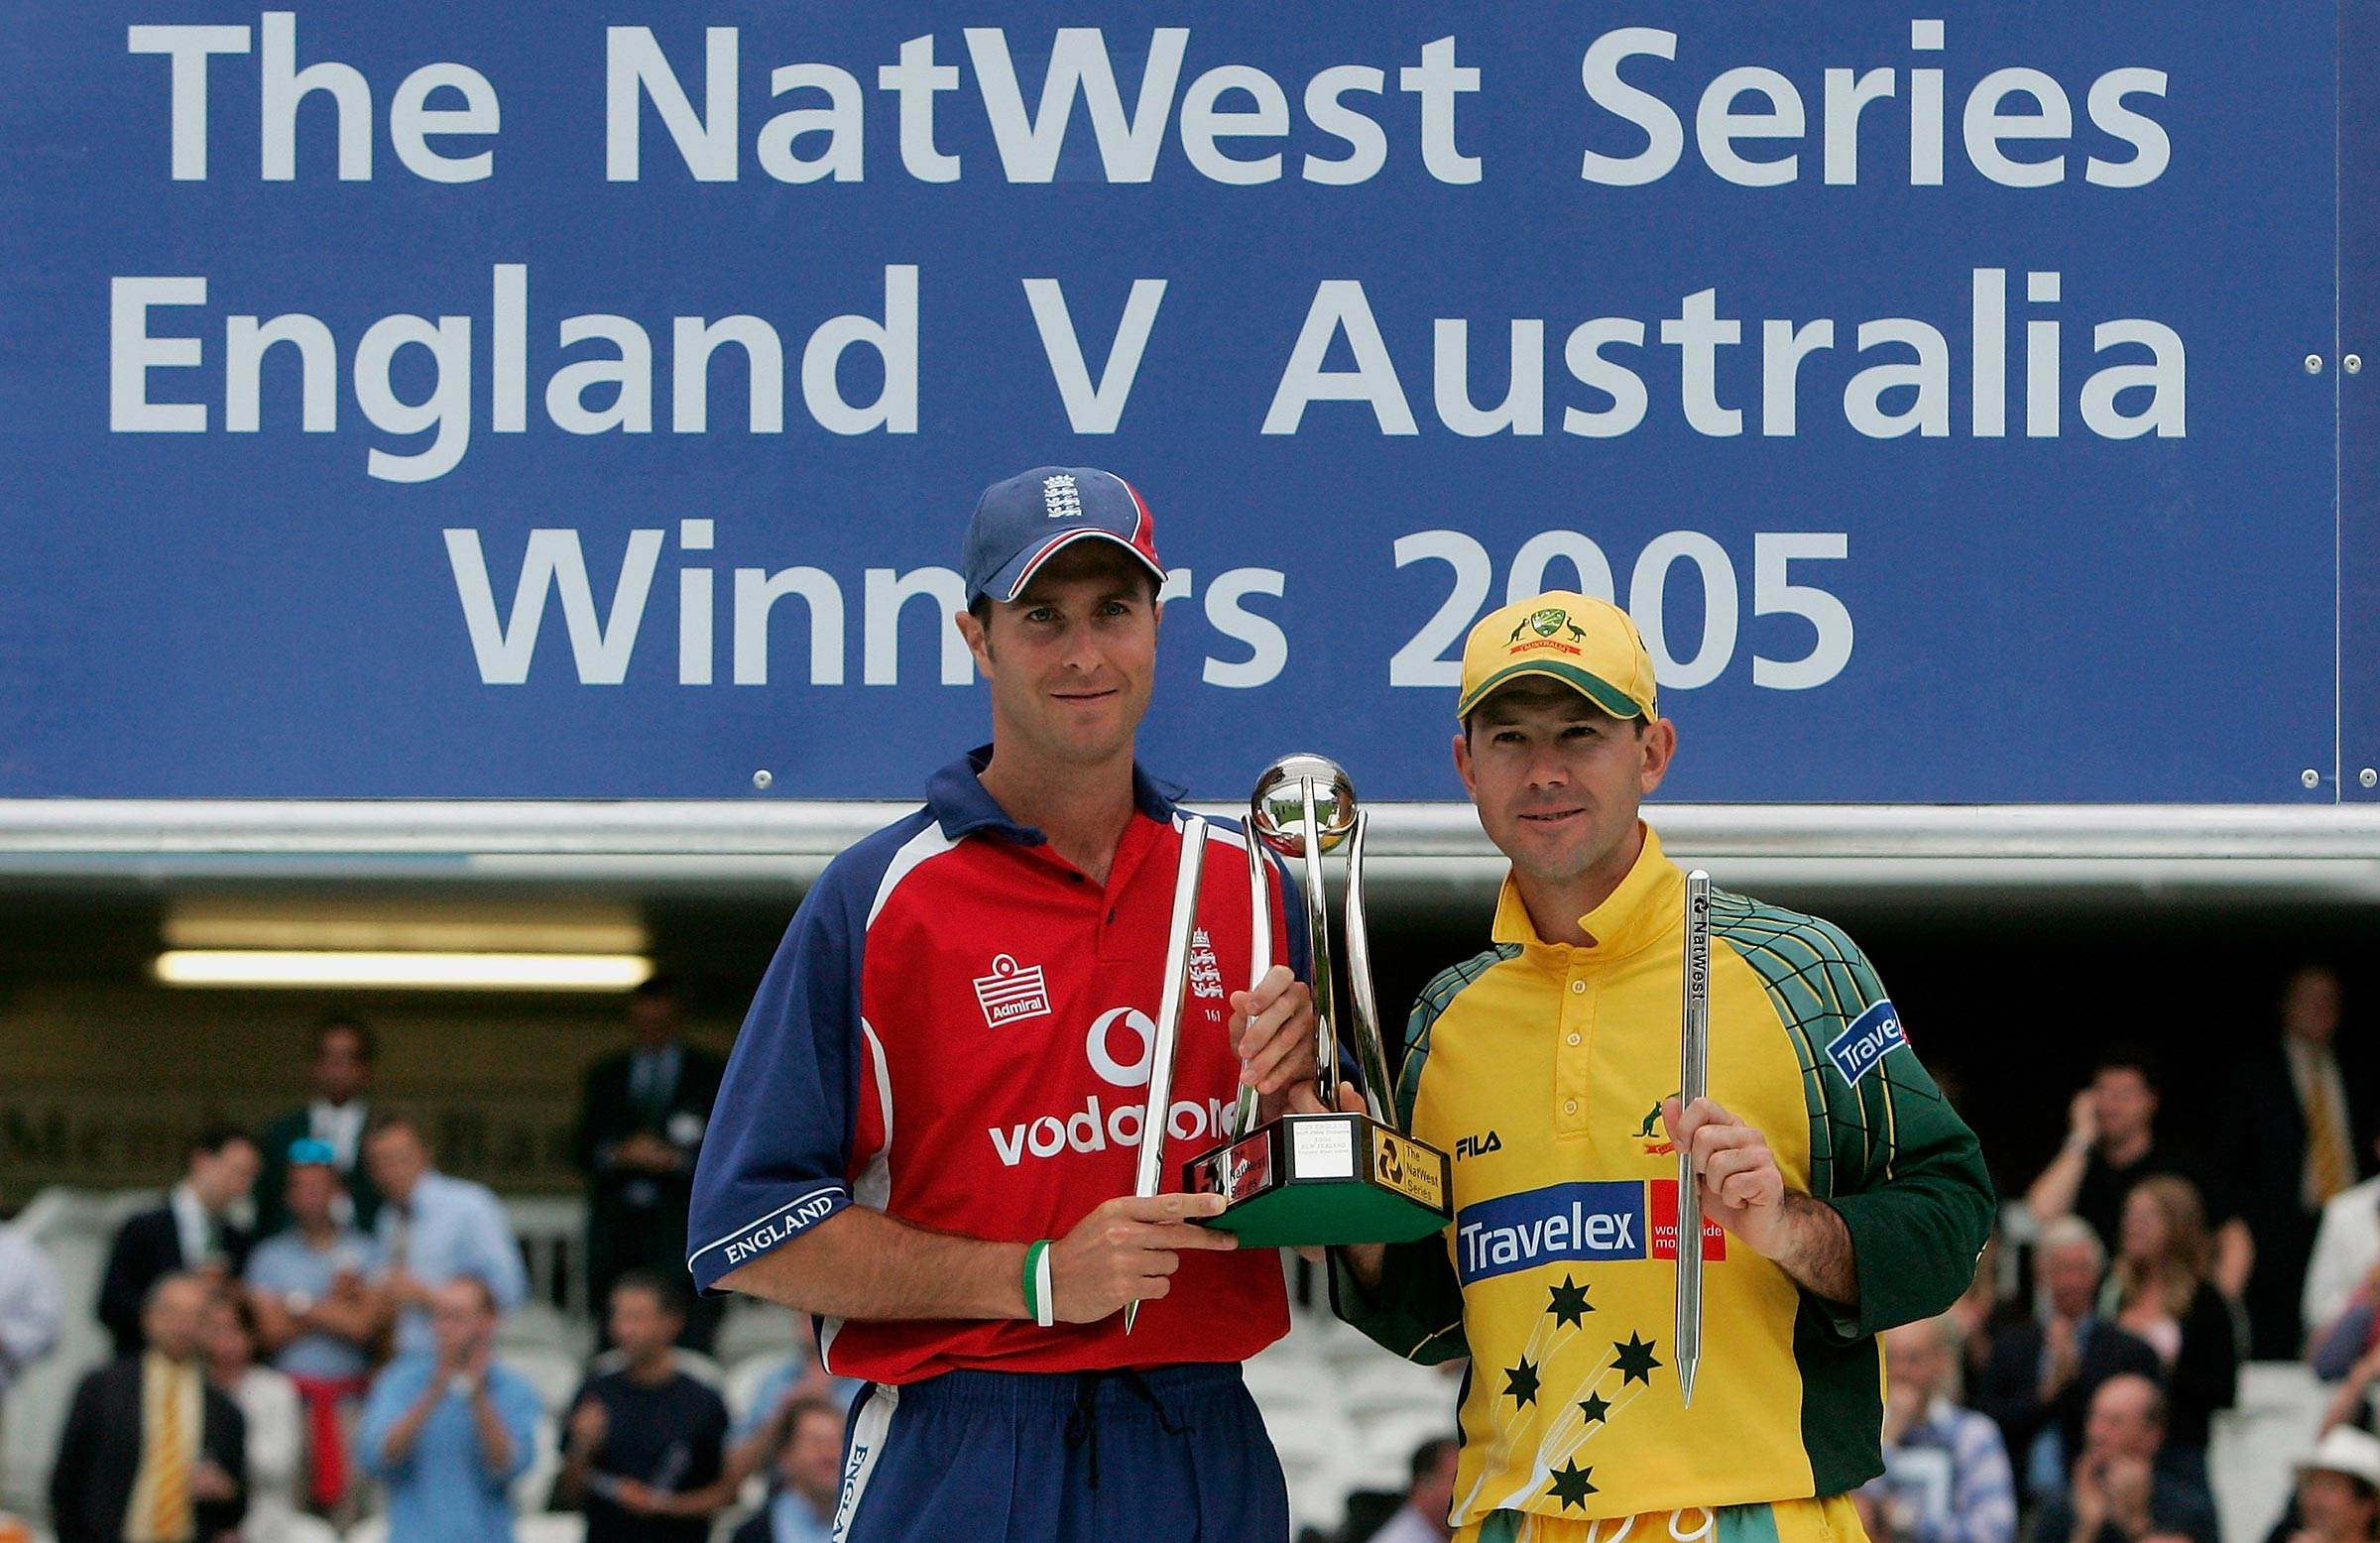 Vaughan and Ponting, co-winners of the 2005 NatWest Trophy // Getty